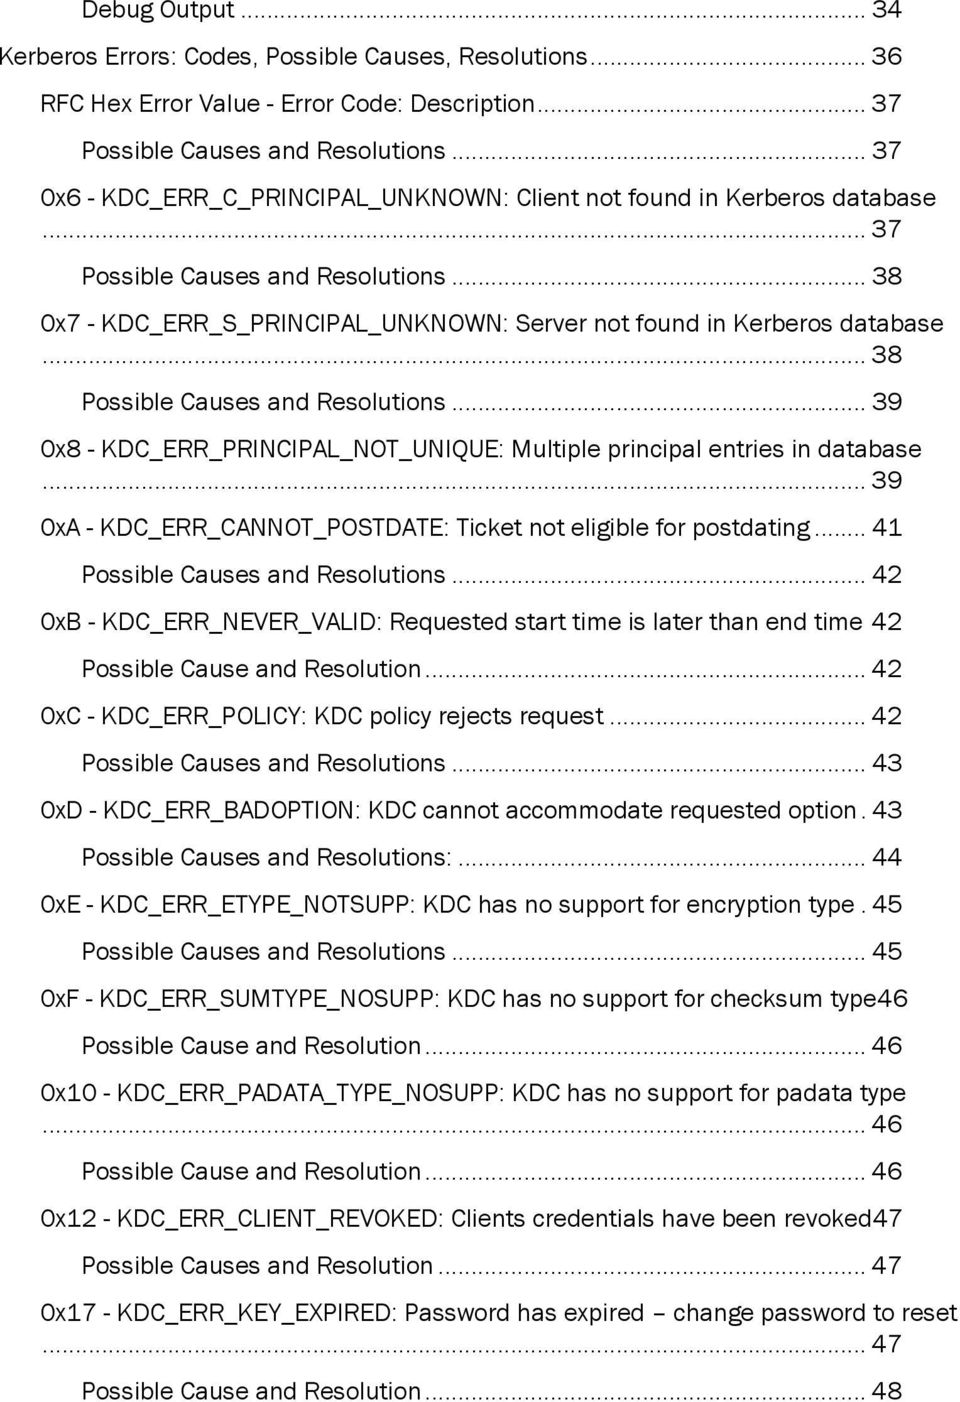 .. 38 Possible Causes and Resolutions... 39 0x8 - KDC_ERR_PRINCIPAL_NOT_UNIQUE: Multiple principal entries in database... 39 0xA - KDC_ERR_CANNOT_POSTDATE: Ticket not eligible for postdating.